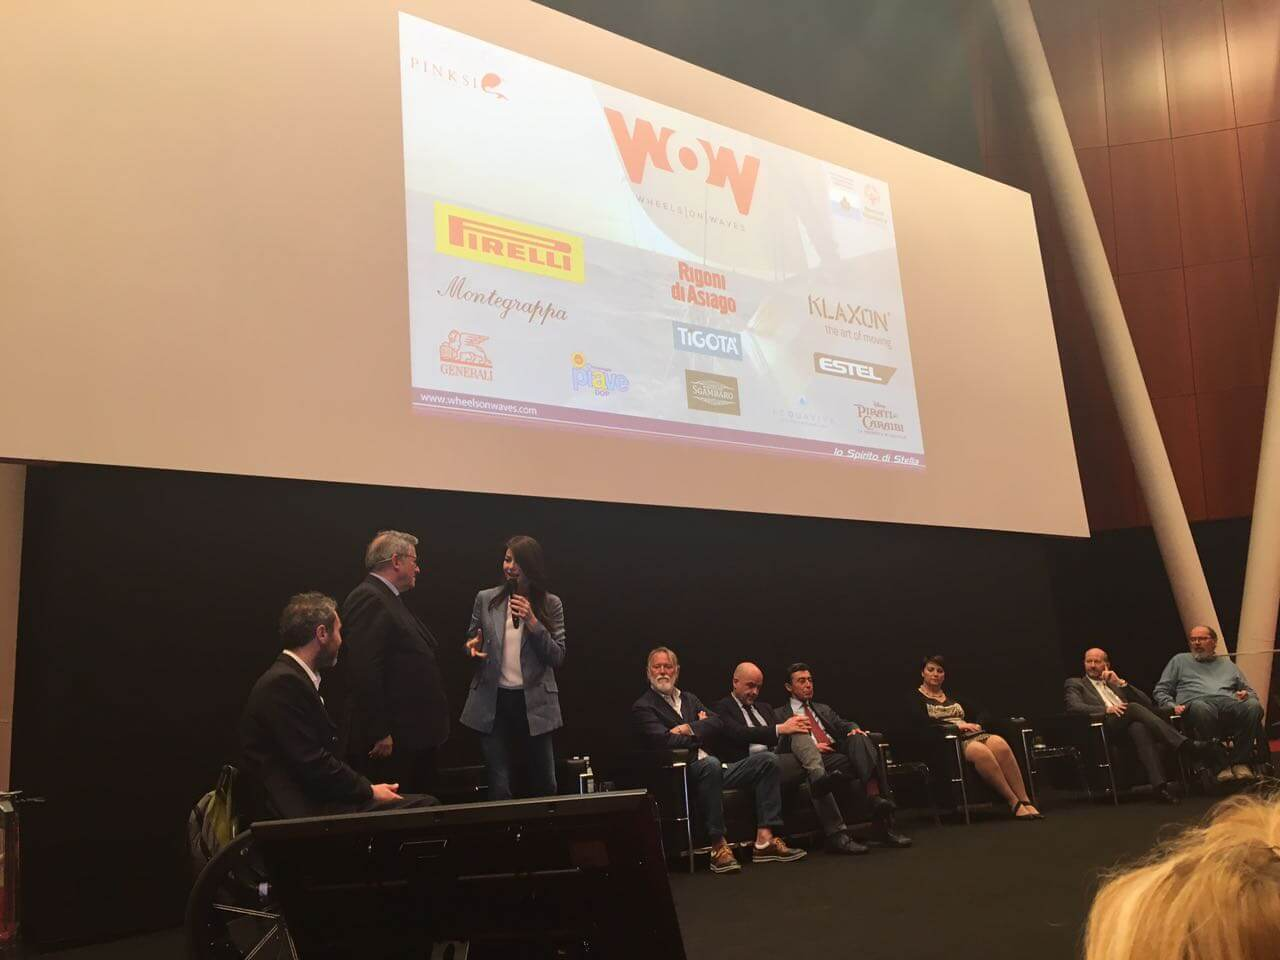 Conferenza Stampa WoW